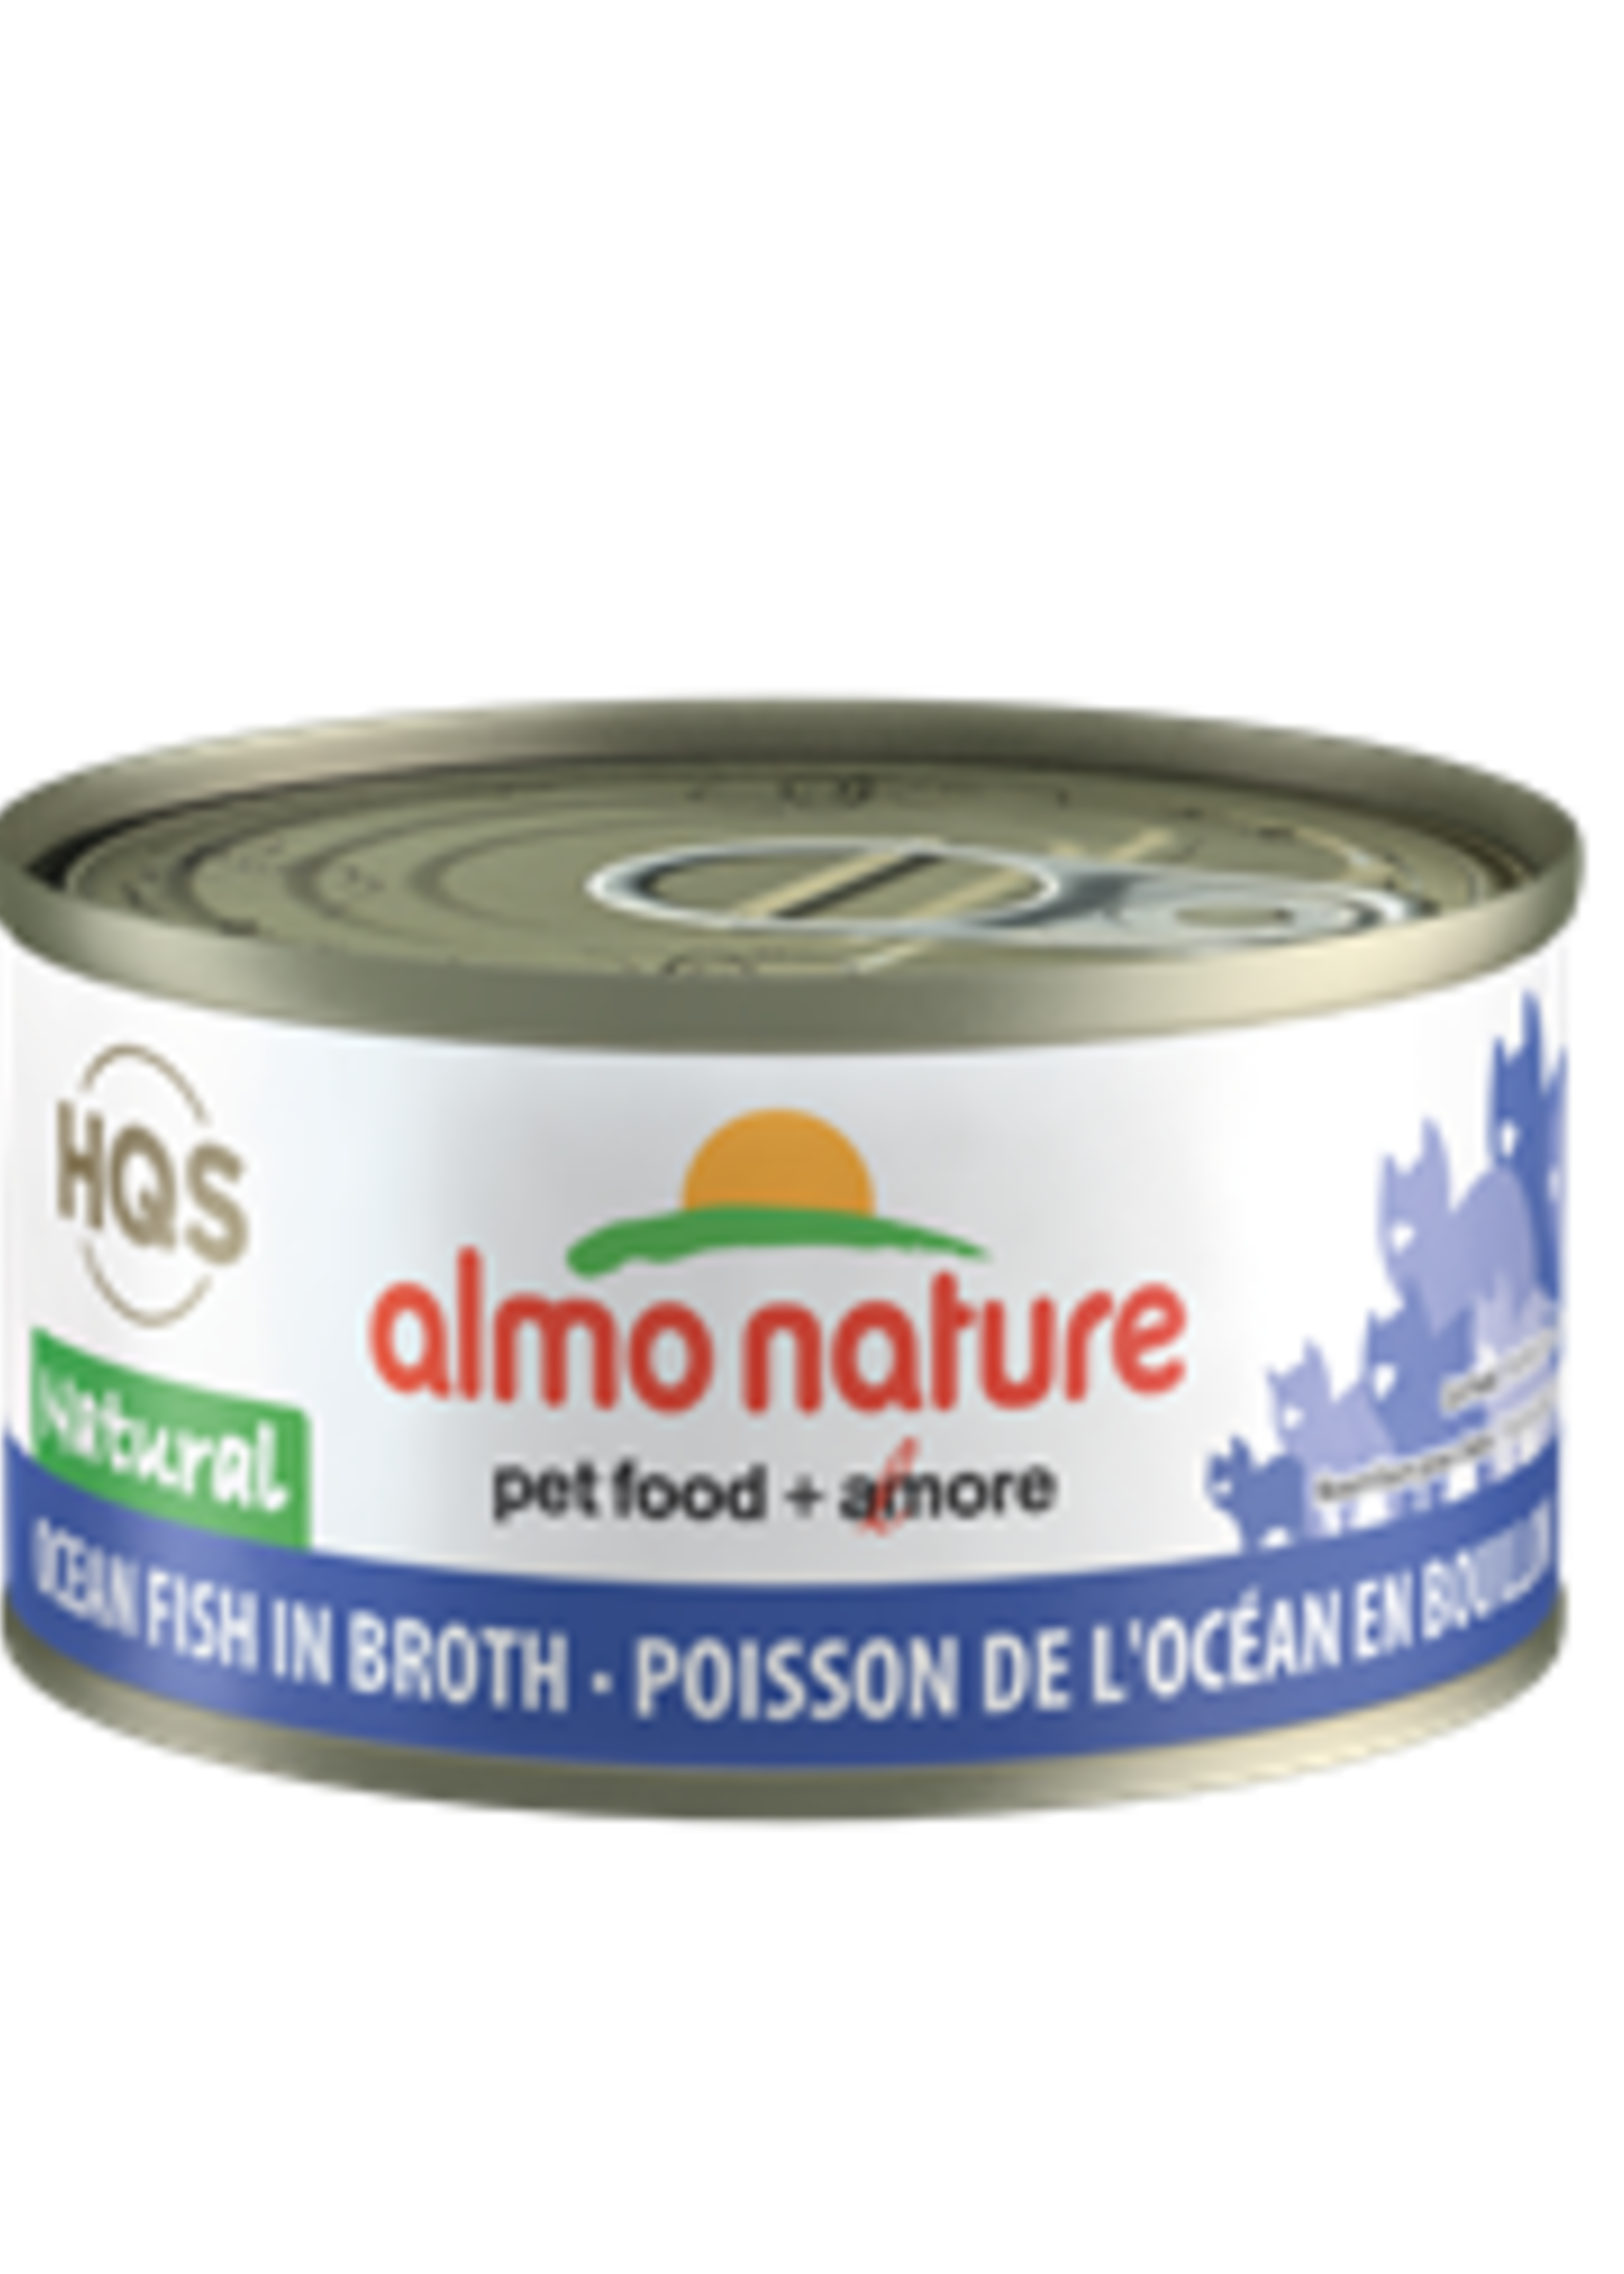 Almo Nature© Almo Nature HQS Natural Ocean Fish in Broth 70g